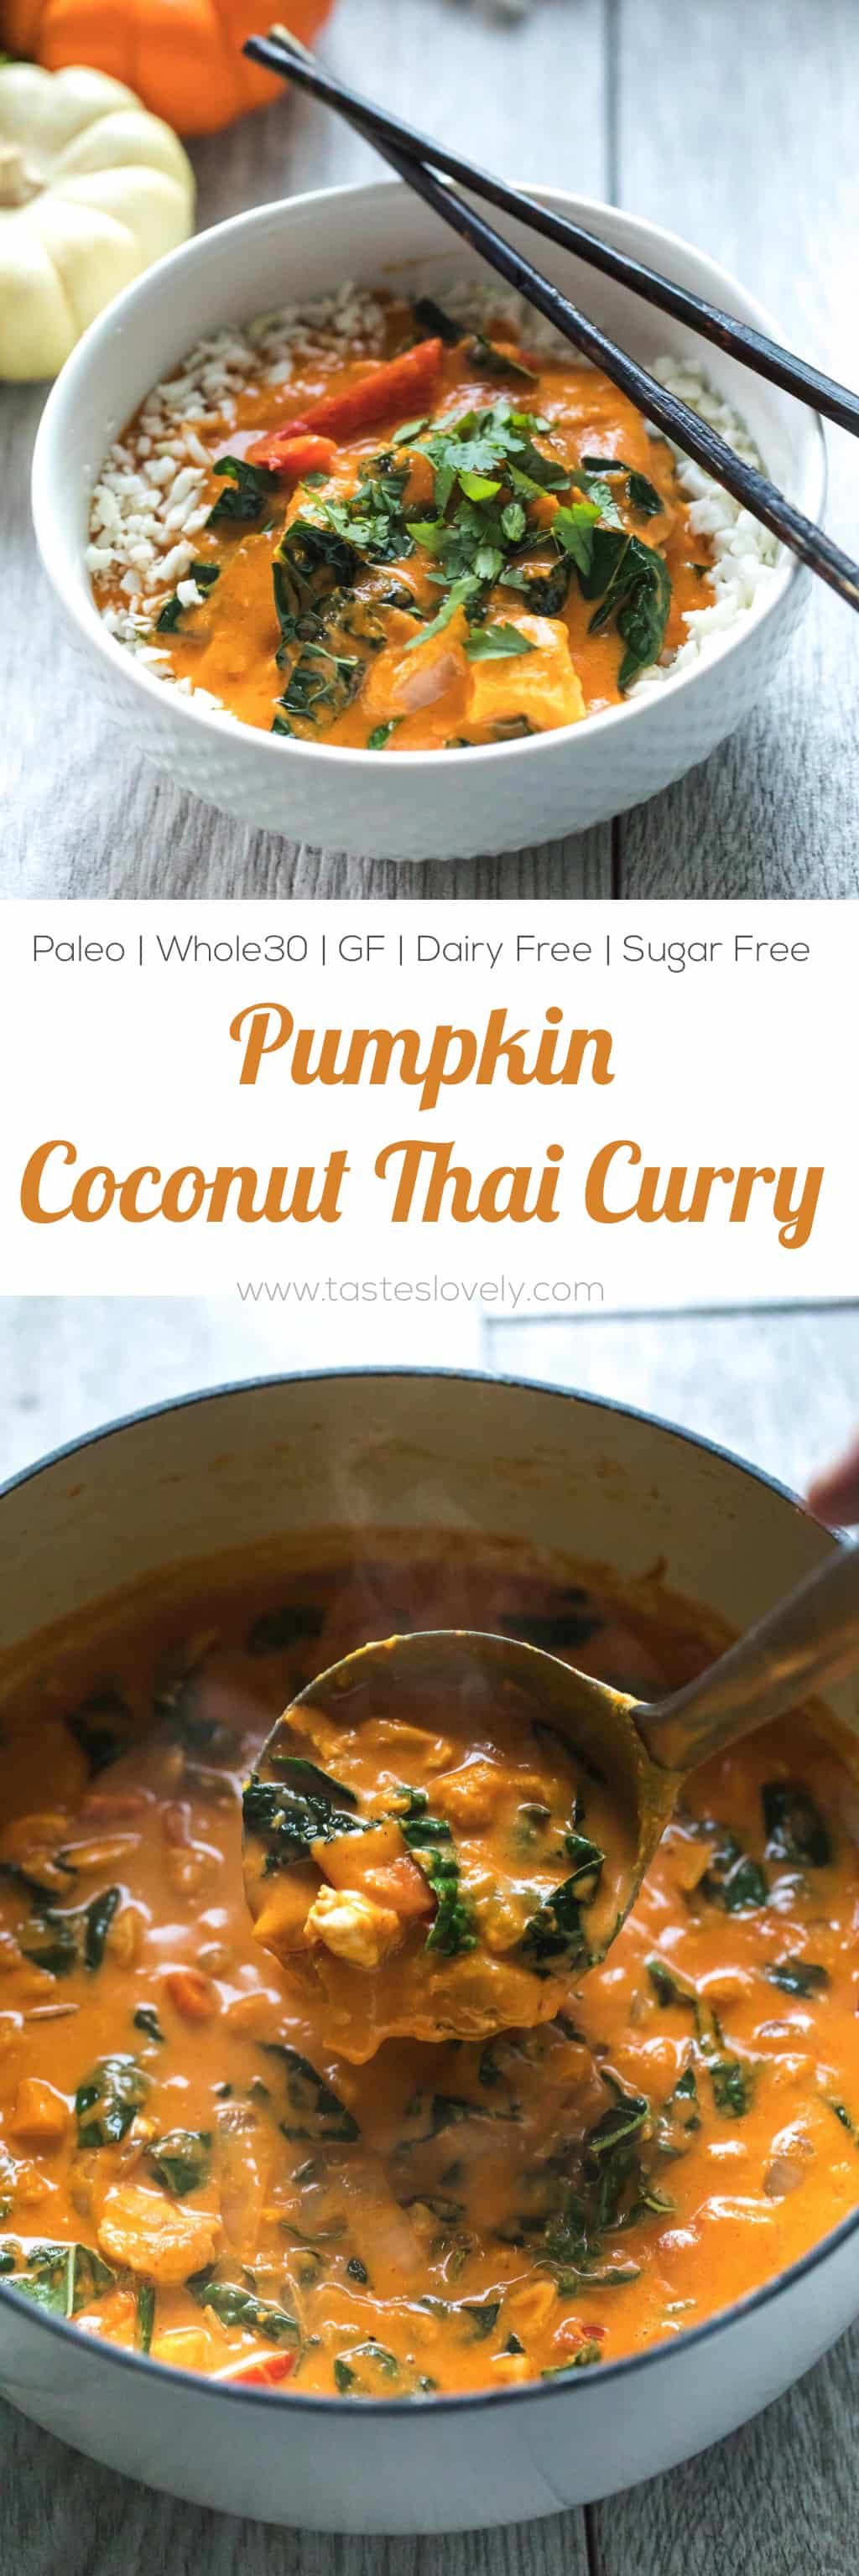 Paleo & Whole30 Pumpkin Coconut Thai Curry - a flavorful and healthy dinner recipe! Gluten free, grain free, dairy free, sugar free, clean eating